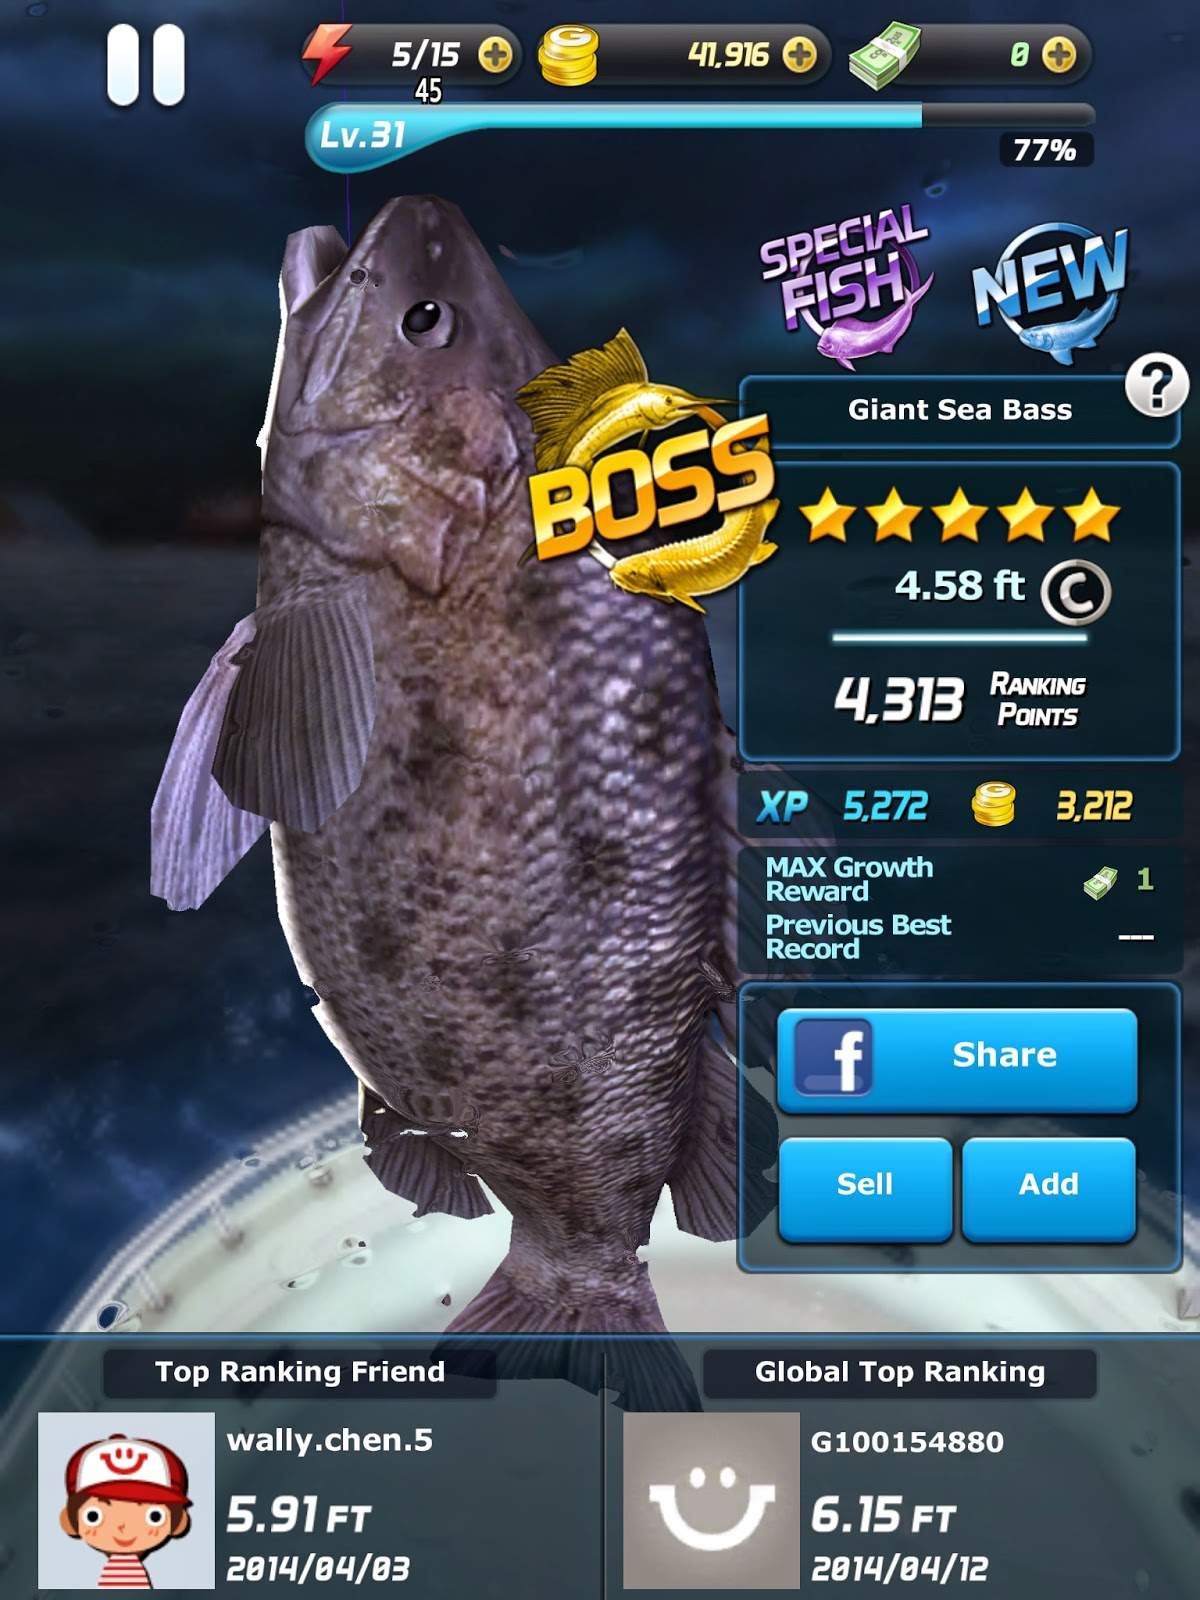 Gratis Game Memancing Ace Fishing - Wild Catch